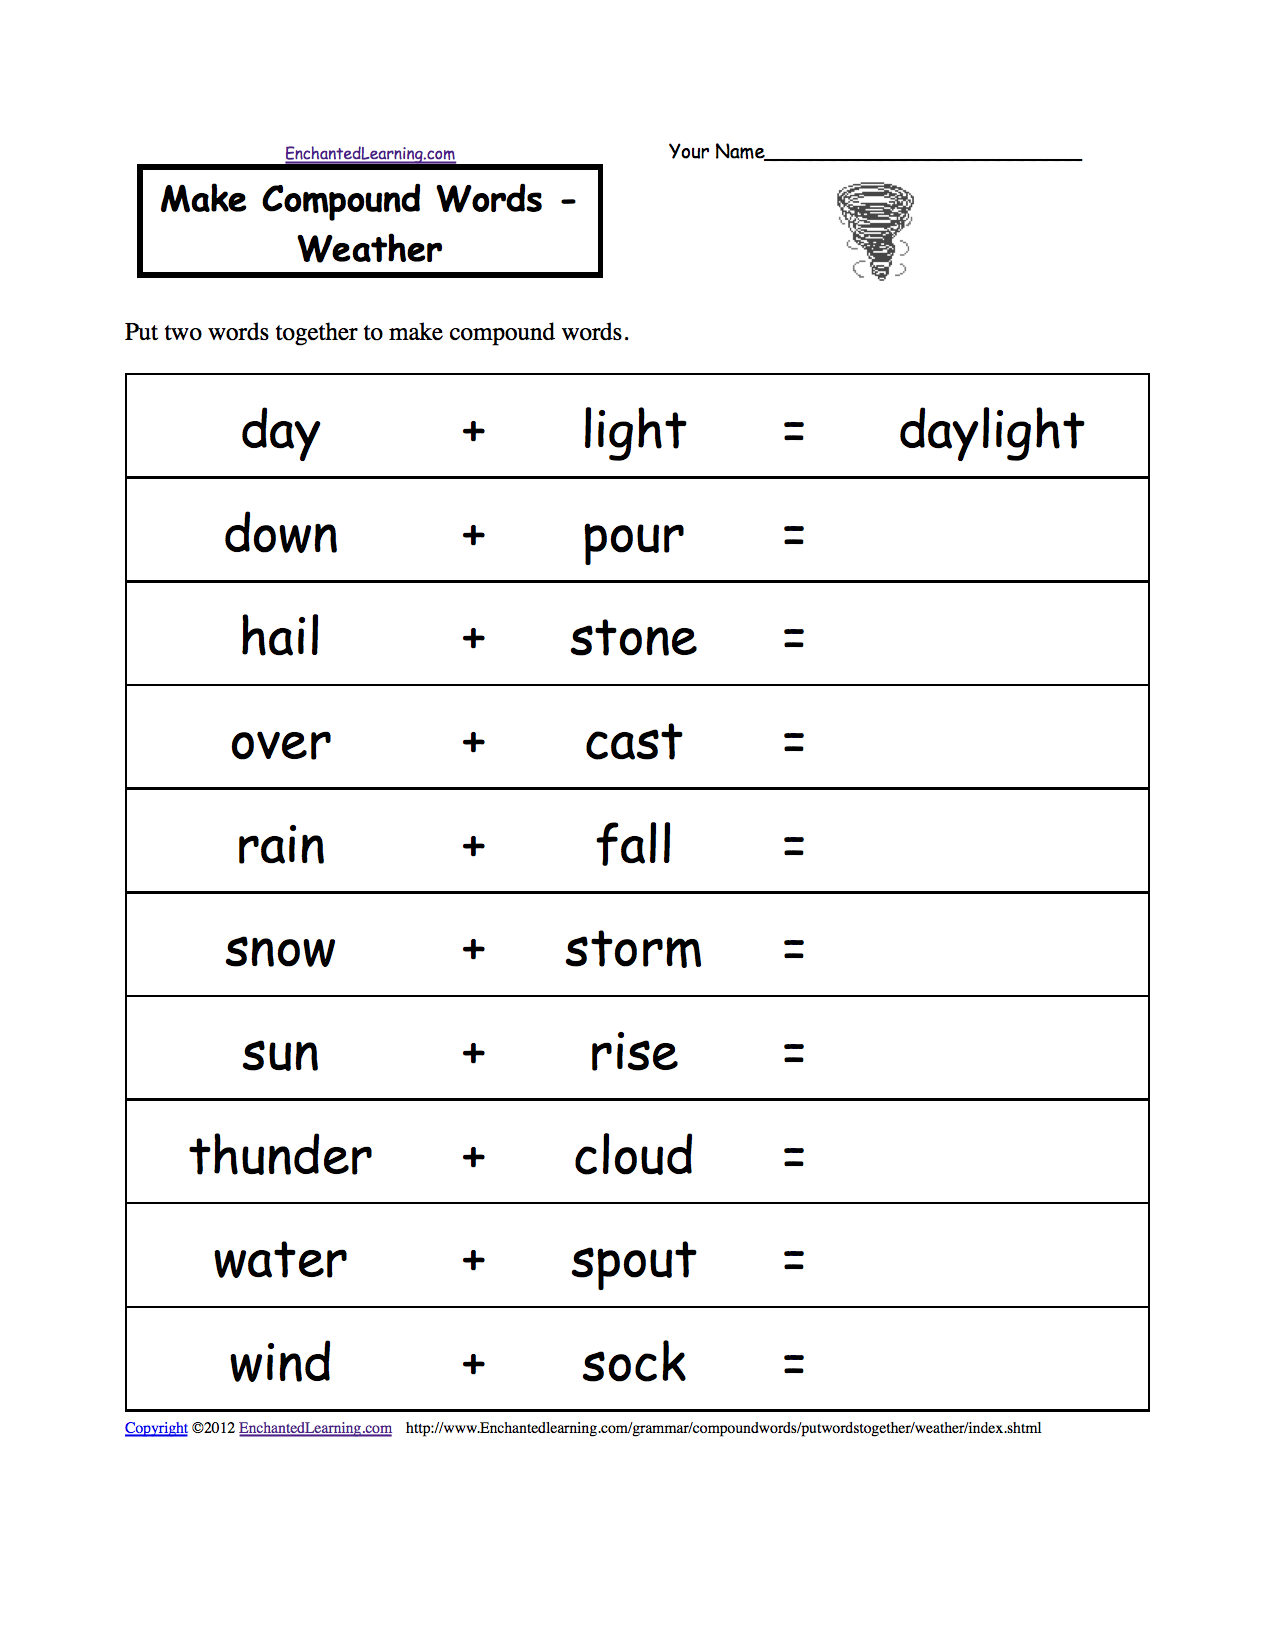 Free Worksheet 4th Grade Spelling Worksheets weather related spelling activities and worksheets at make compound words